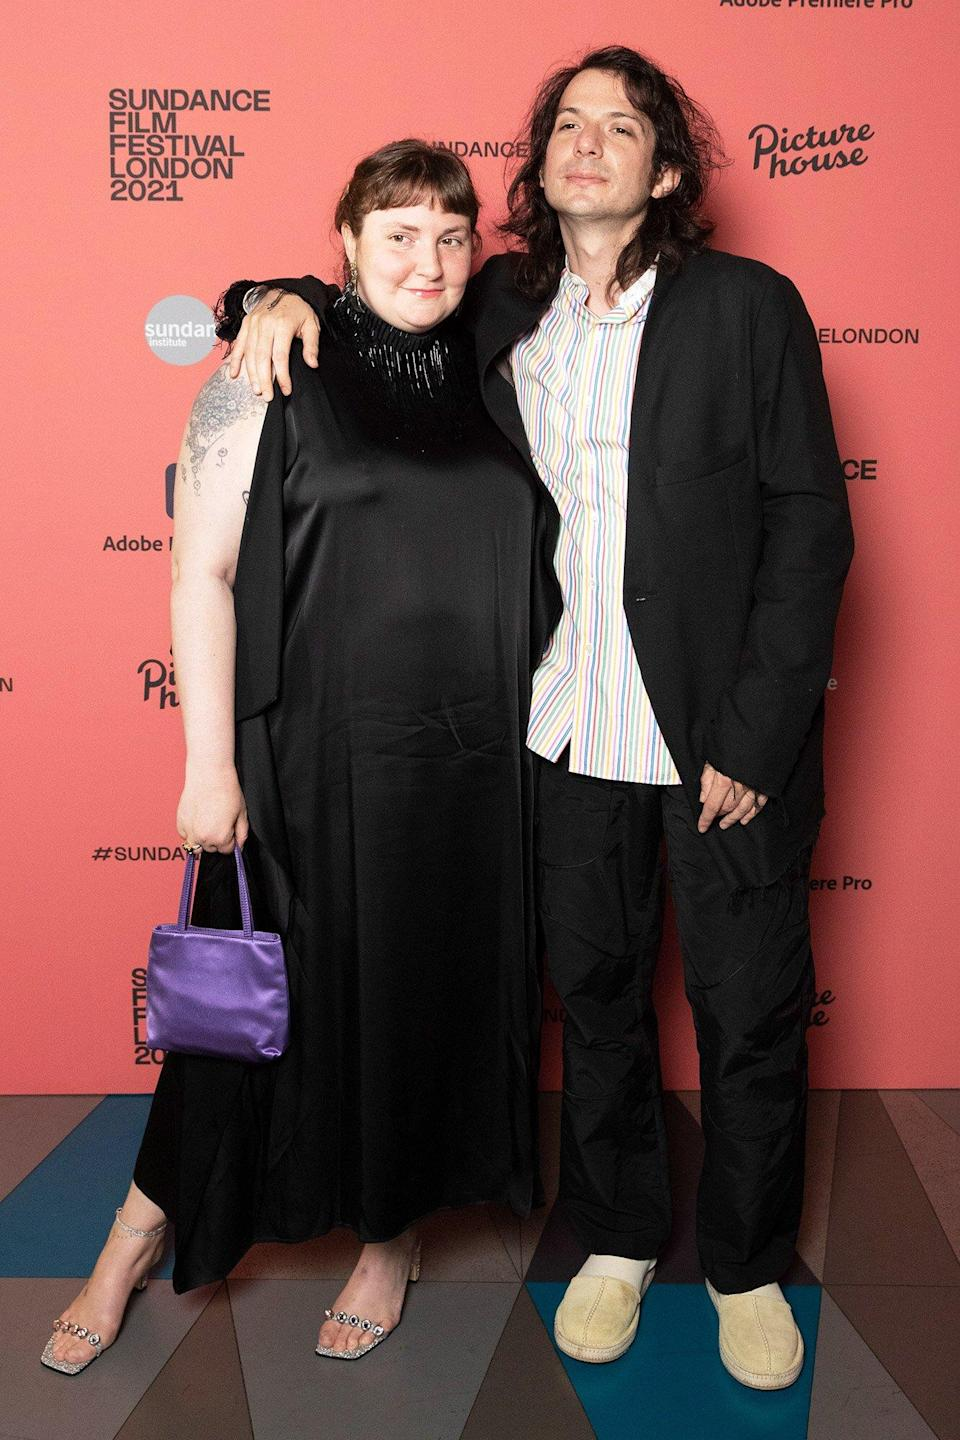 """Lena Dunham and Luis Felber attend the """"Zola"""" special screening at Picturehouse Central on August 01, 2021 in London, England"""